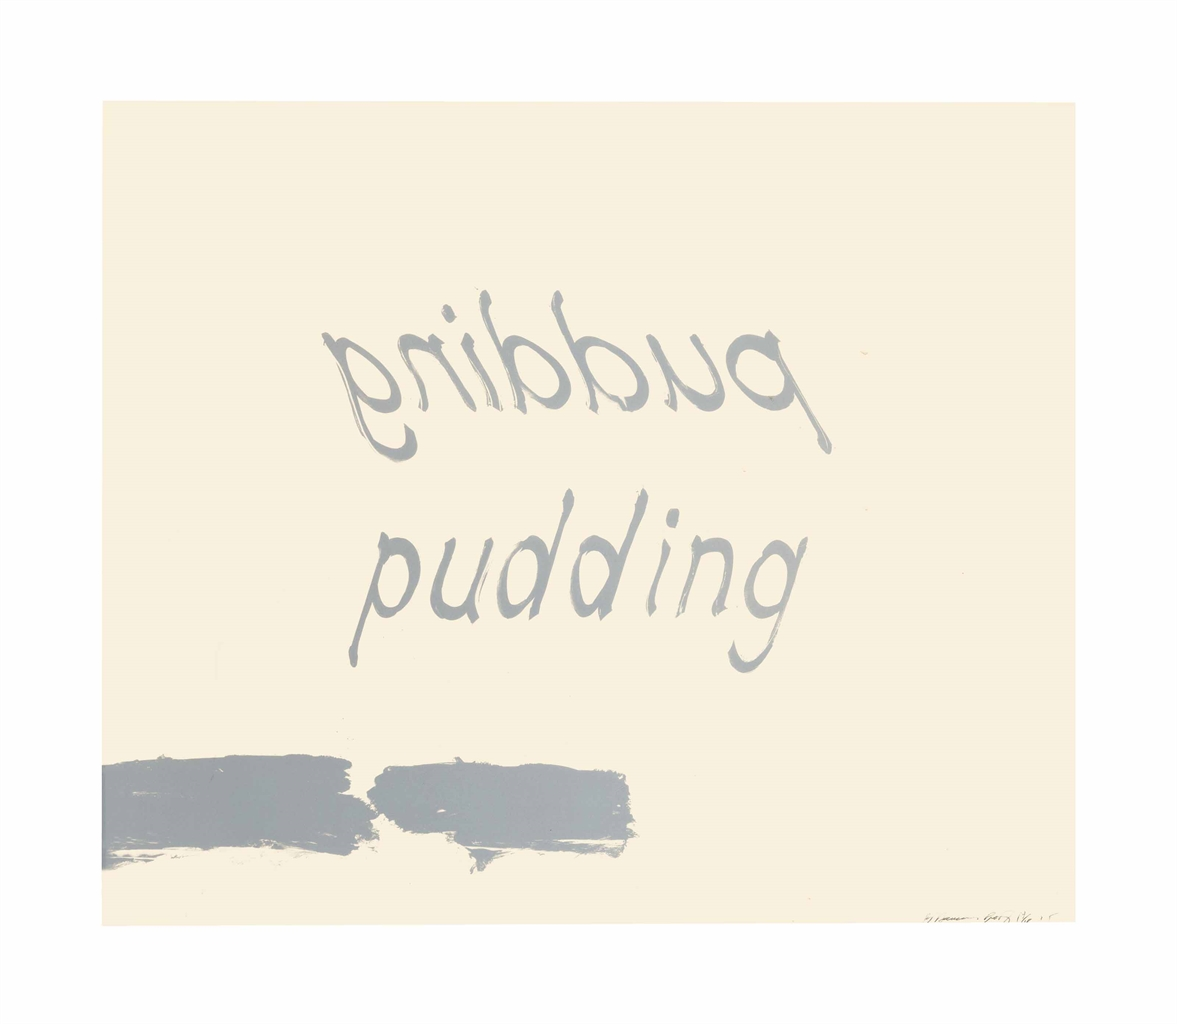 Bruce Nauman-Proof of Pudding-1975